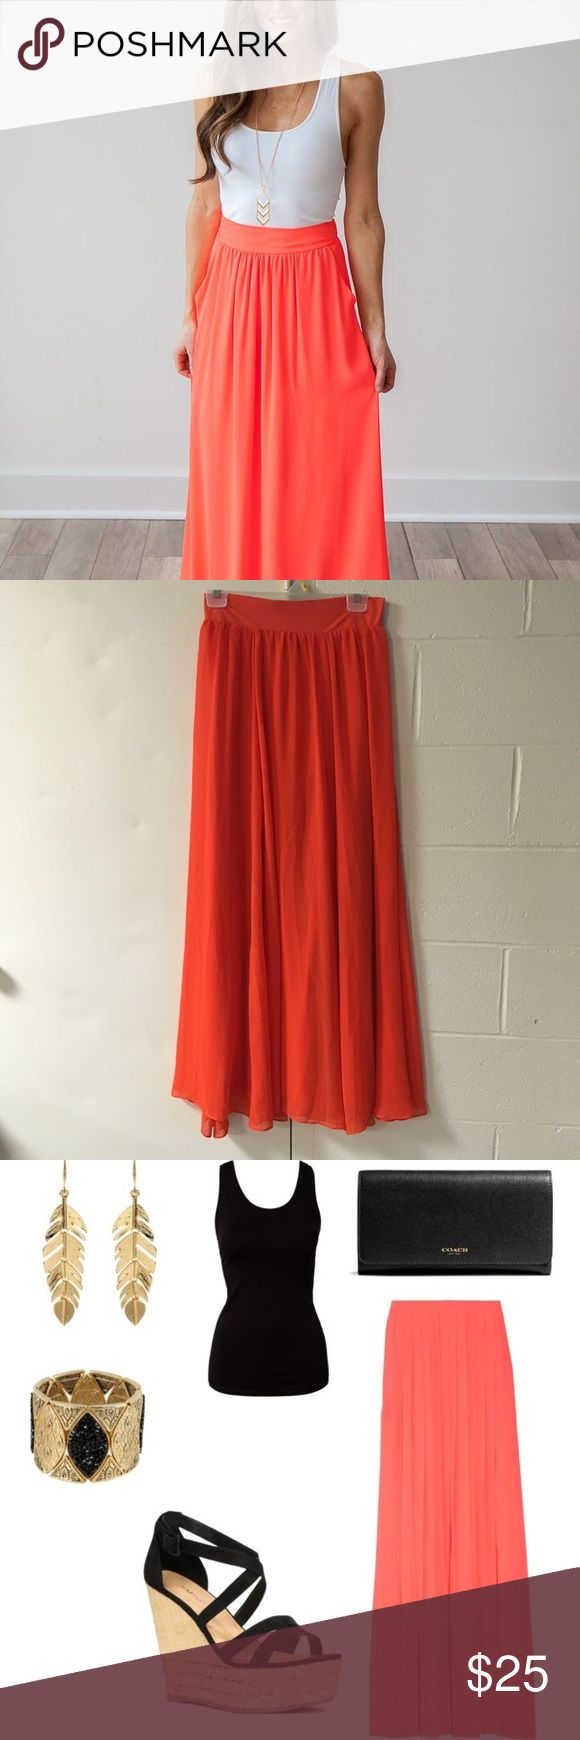 Coral Maxi Skirt Like new--only worn once Perfect condition, fully lined New York & Company Skirts Maxi